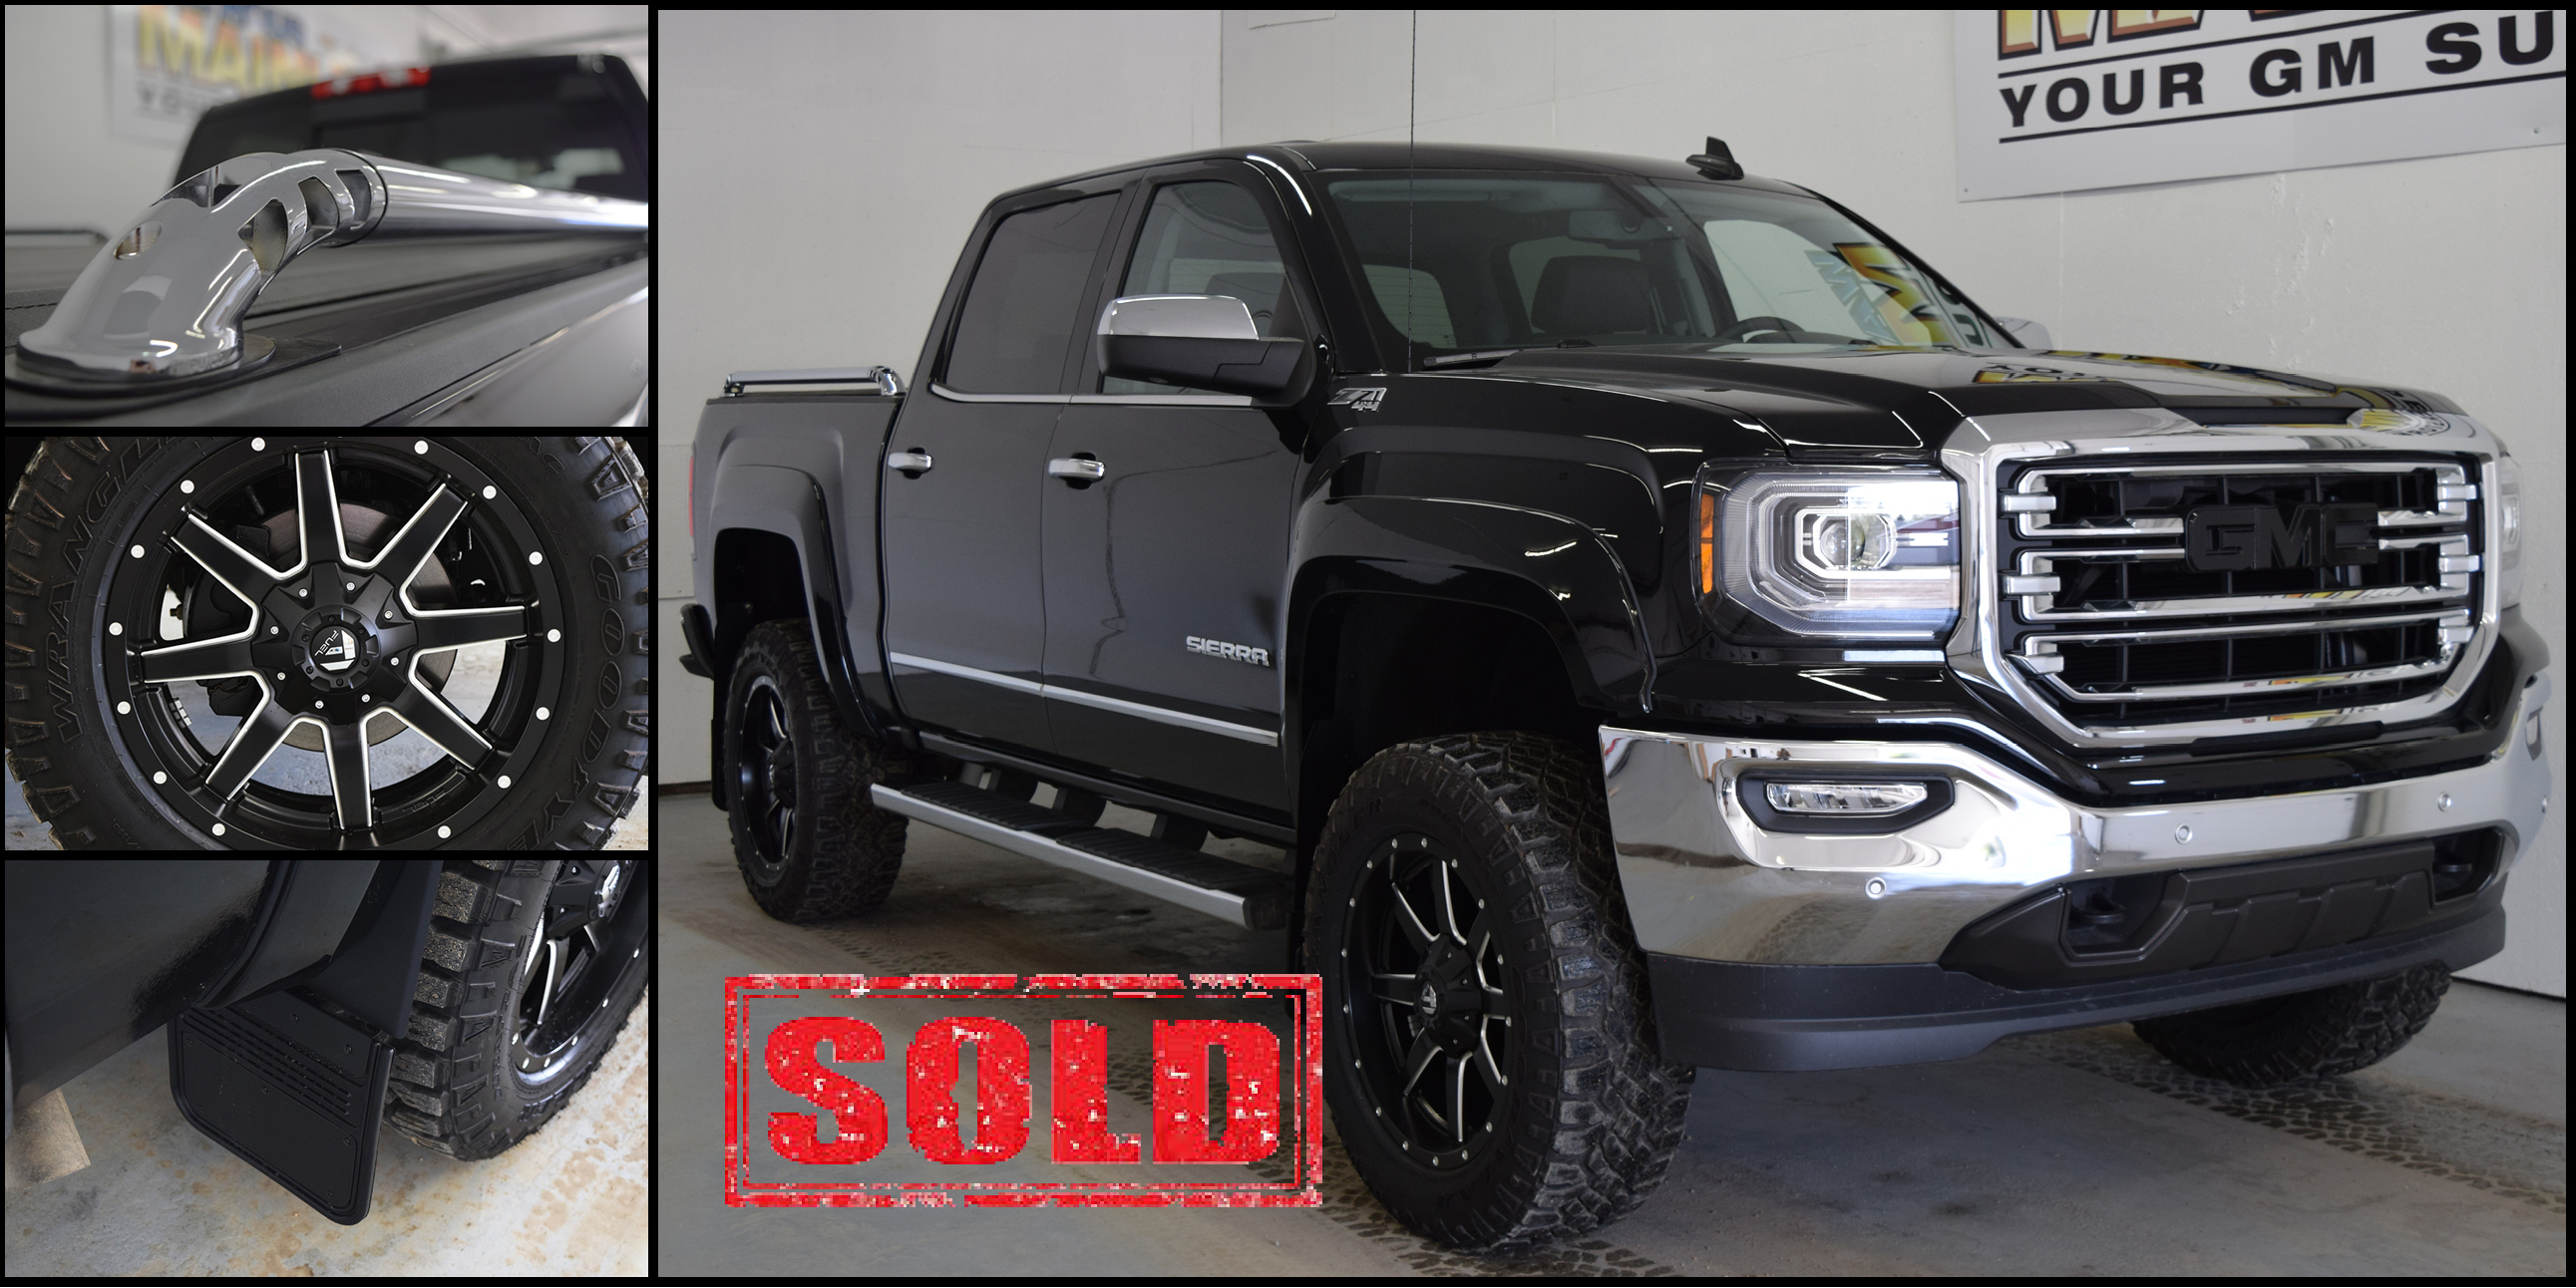 Customized GMC Sierra 1500 with aftermarket accessories, tires, sidebars